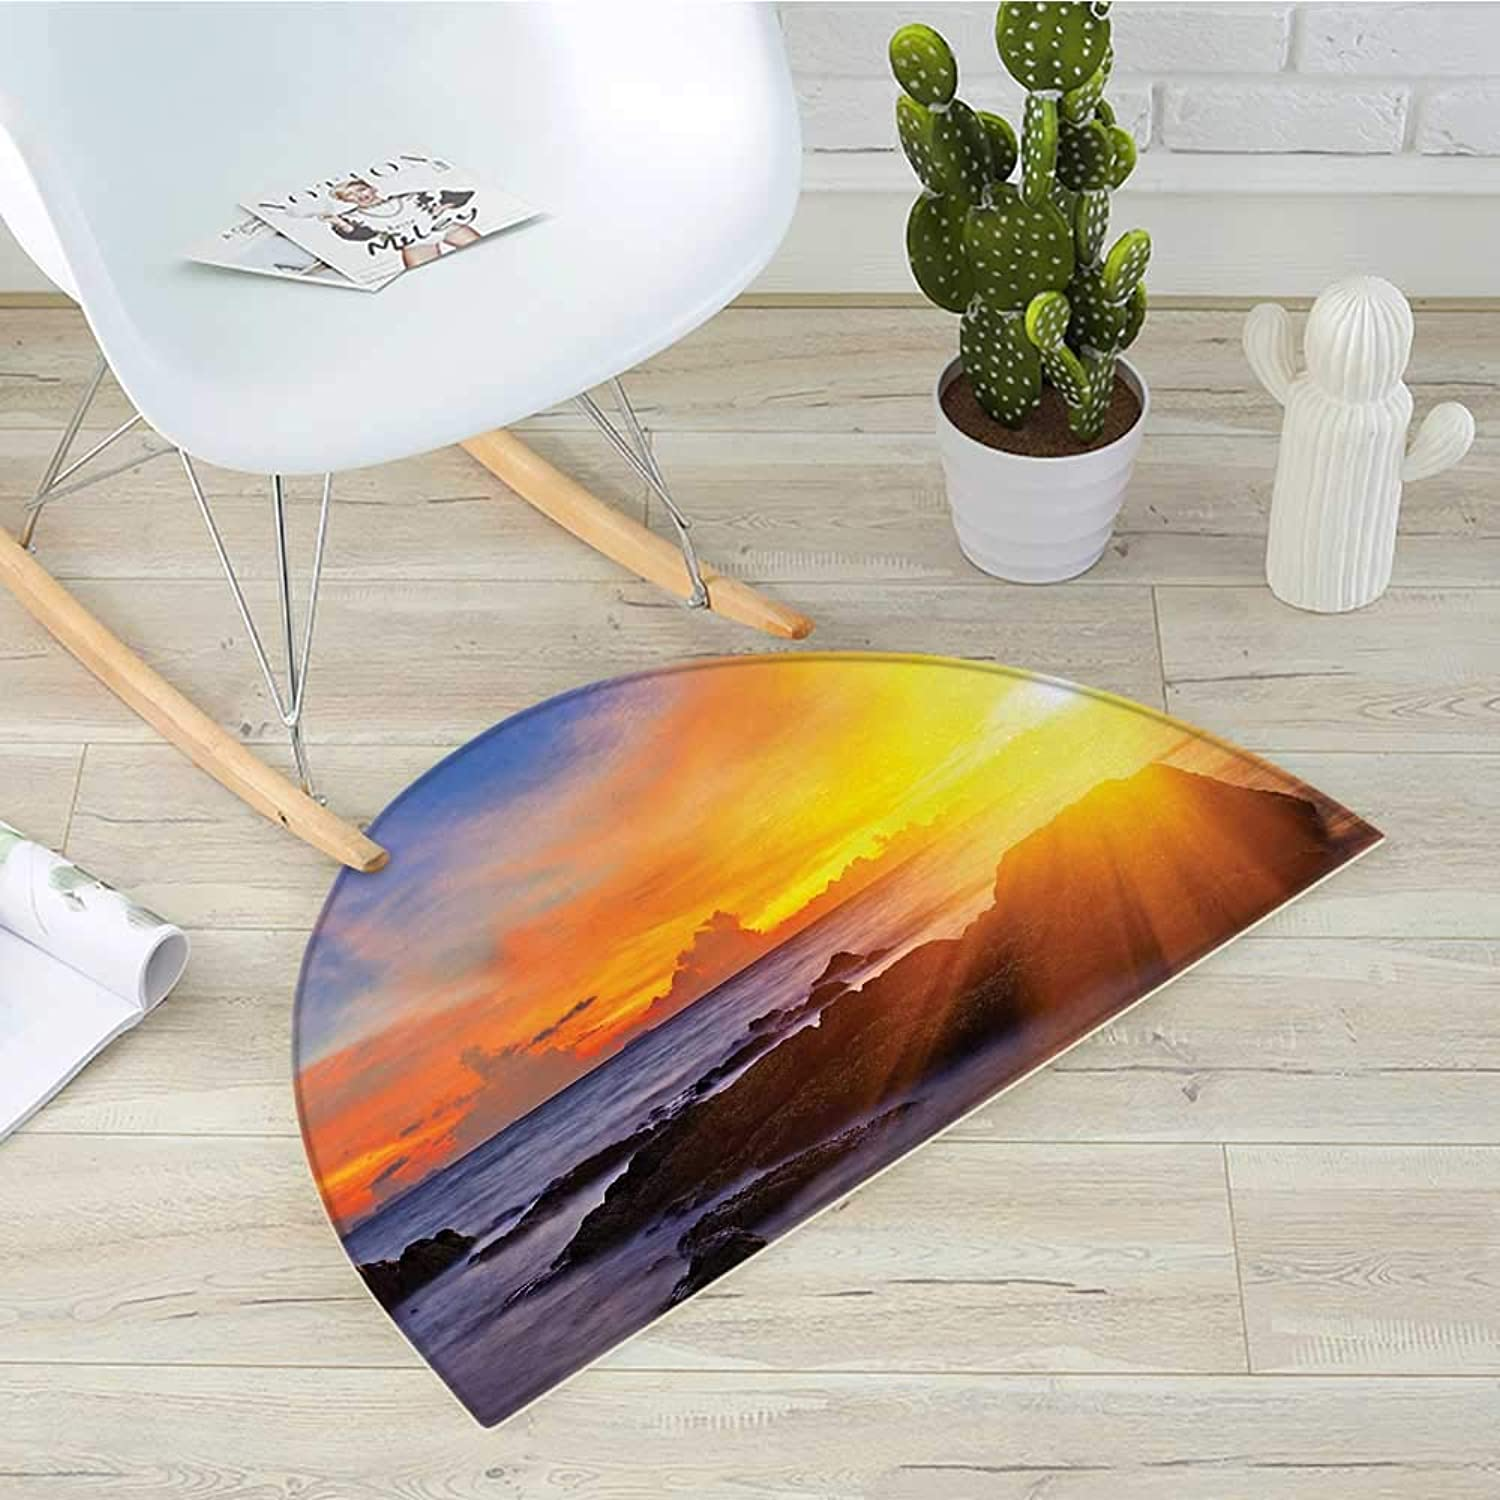 Beach Semicircle Doormat colorful Sunset with Light Romance in The Sky at Tropic Beach Fantasy Landscape Halfmoon doormats H 39.3  xD 59  orange bluee